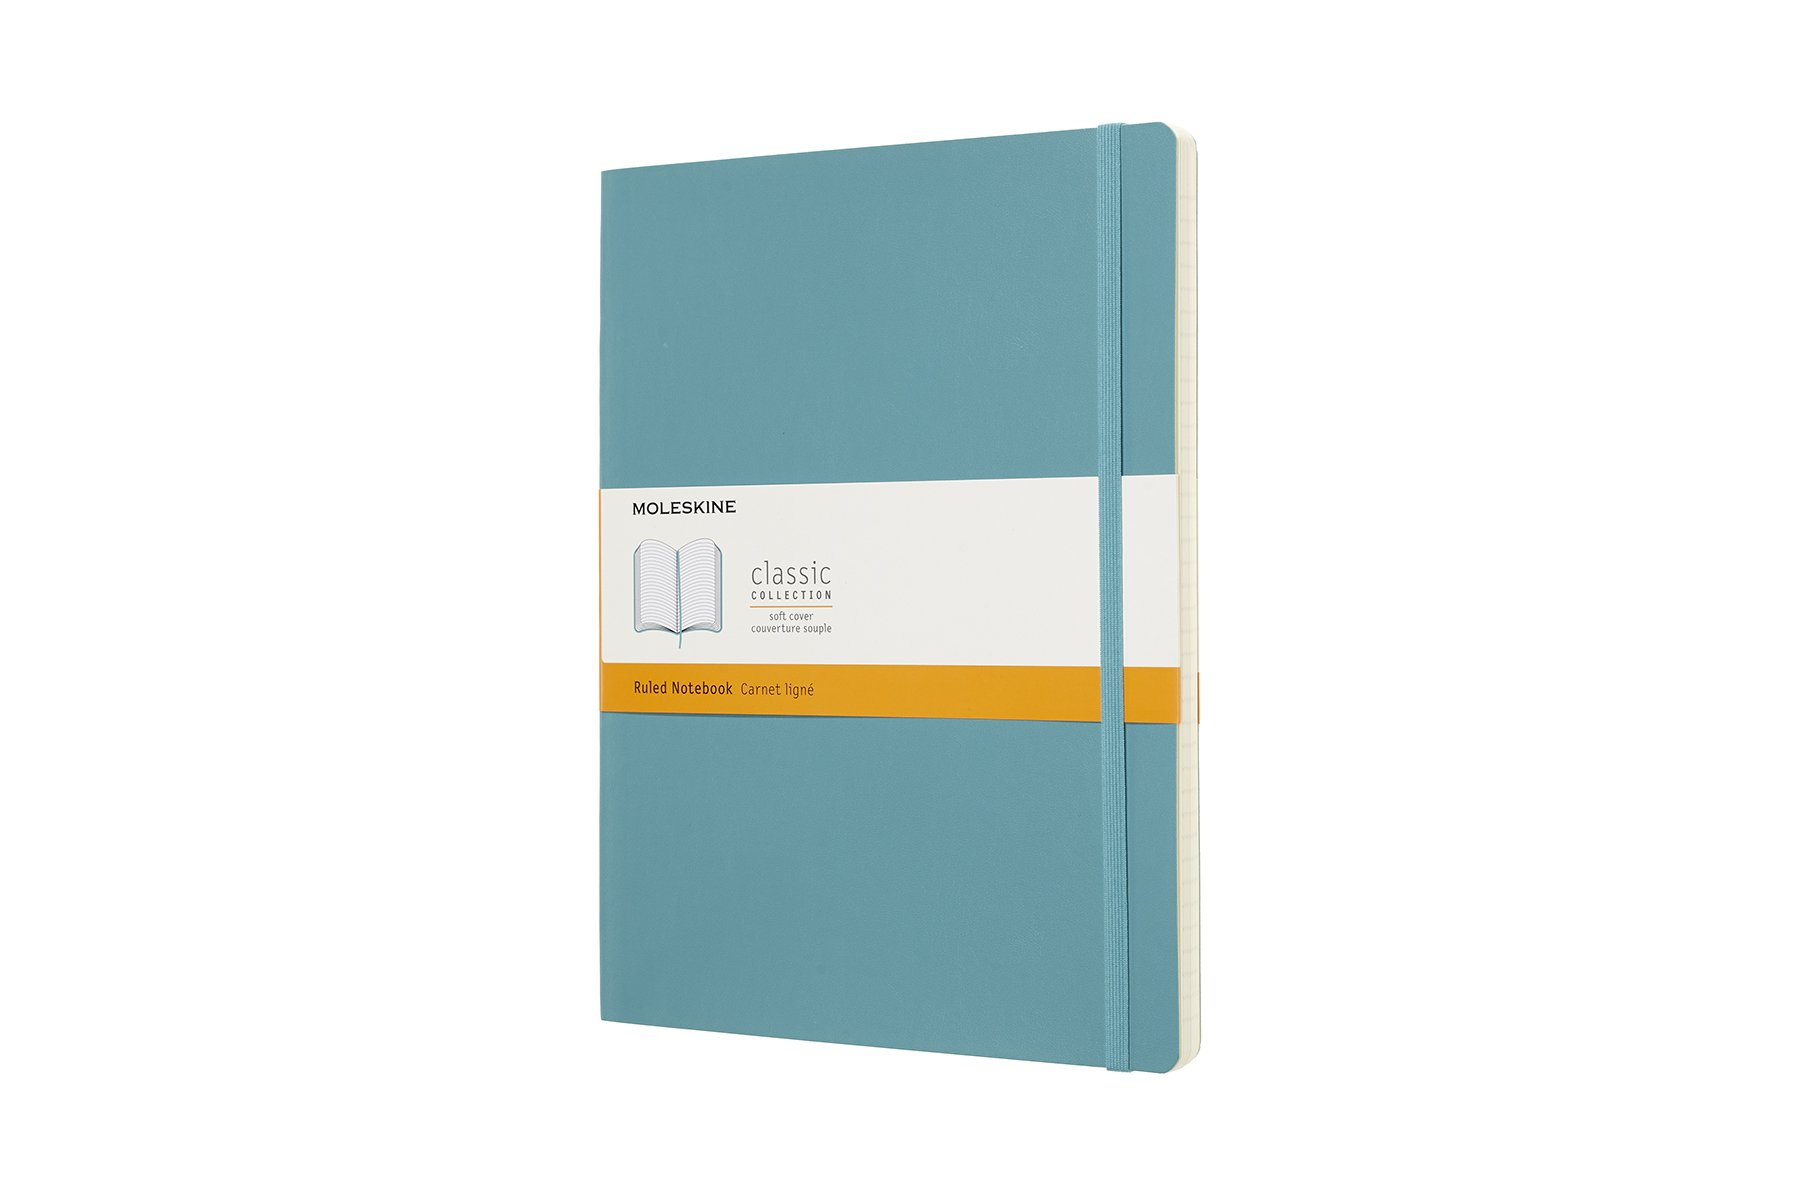 Moleskine Classic Soft Cover Notebook, Ruled, XL (7.5'' x 9.75'') Reef Blue - Soft Cover Notebook for Writing, Sketching, Journals